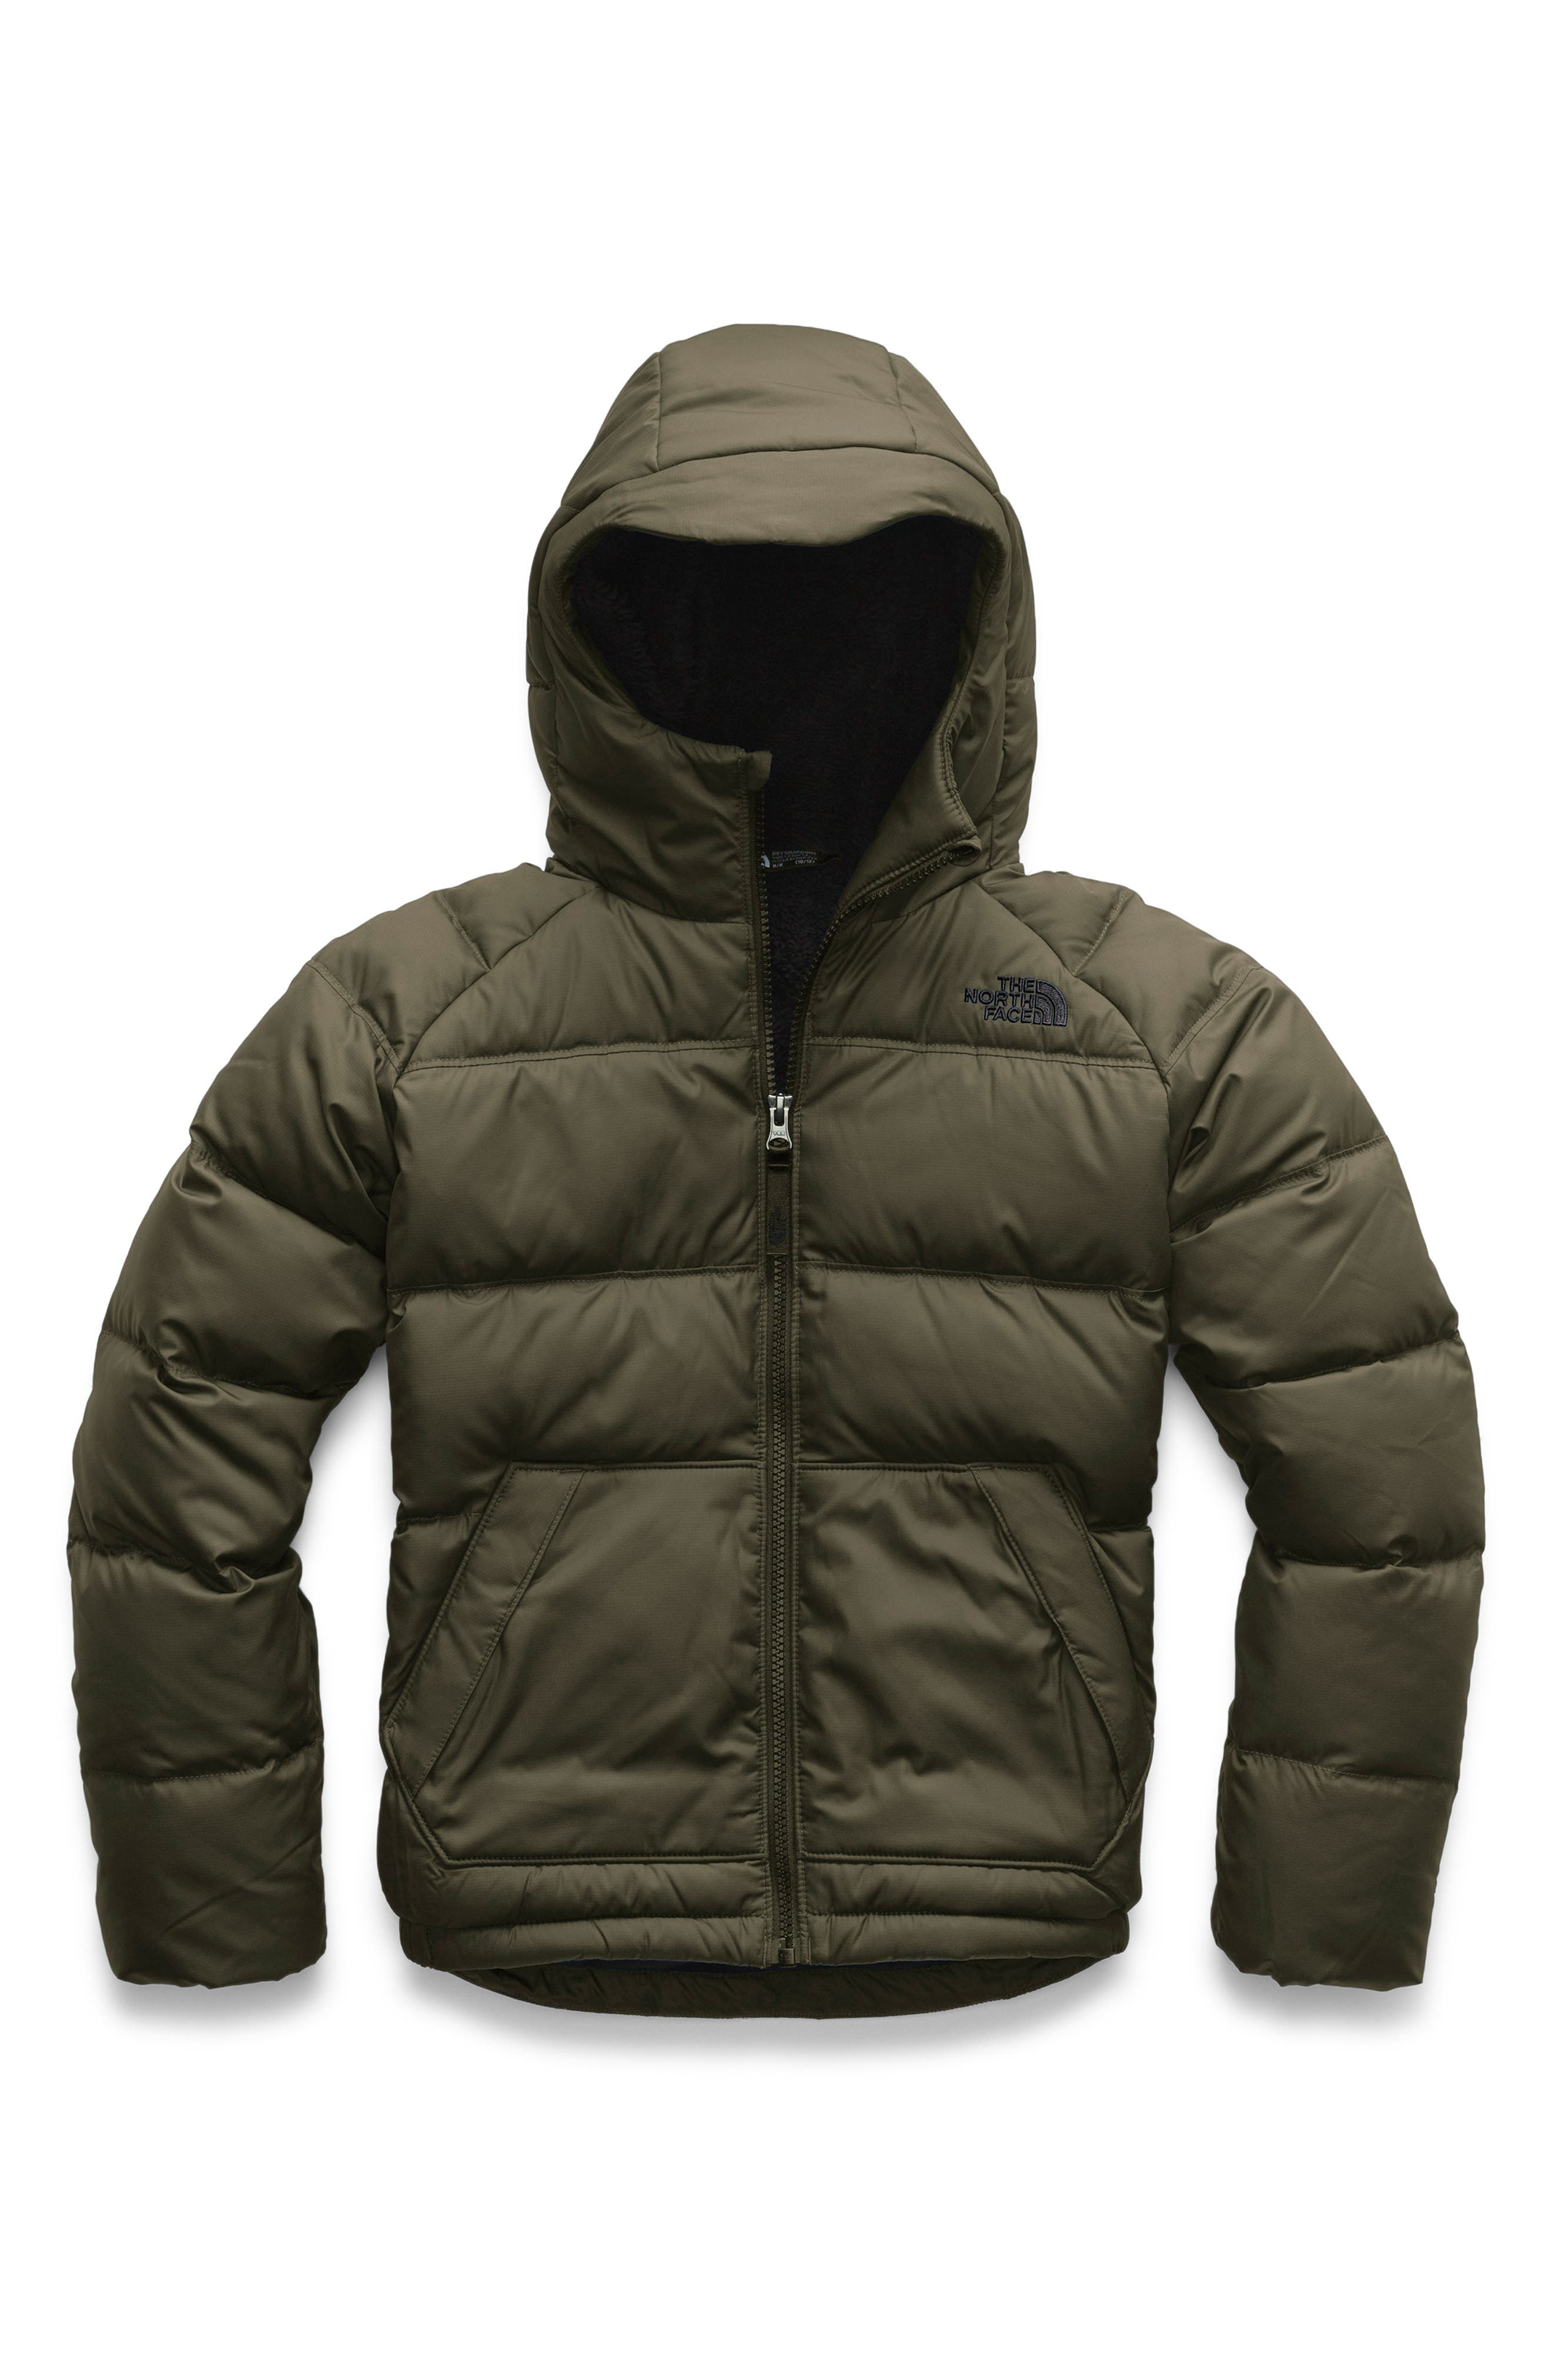 ... closeout the north face moondoggy 2.0 water repellent down jacket big  boys cc278 a34ff 8599732e0